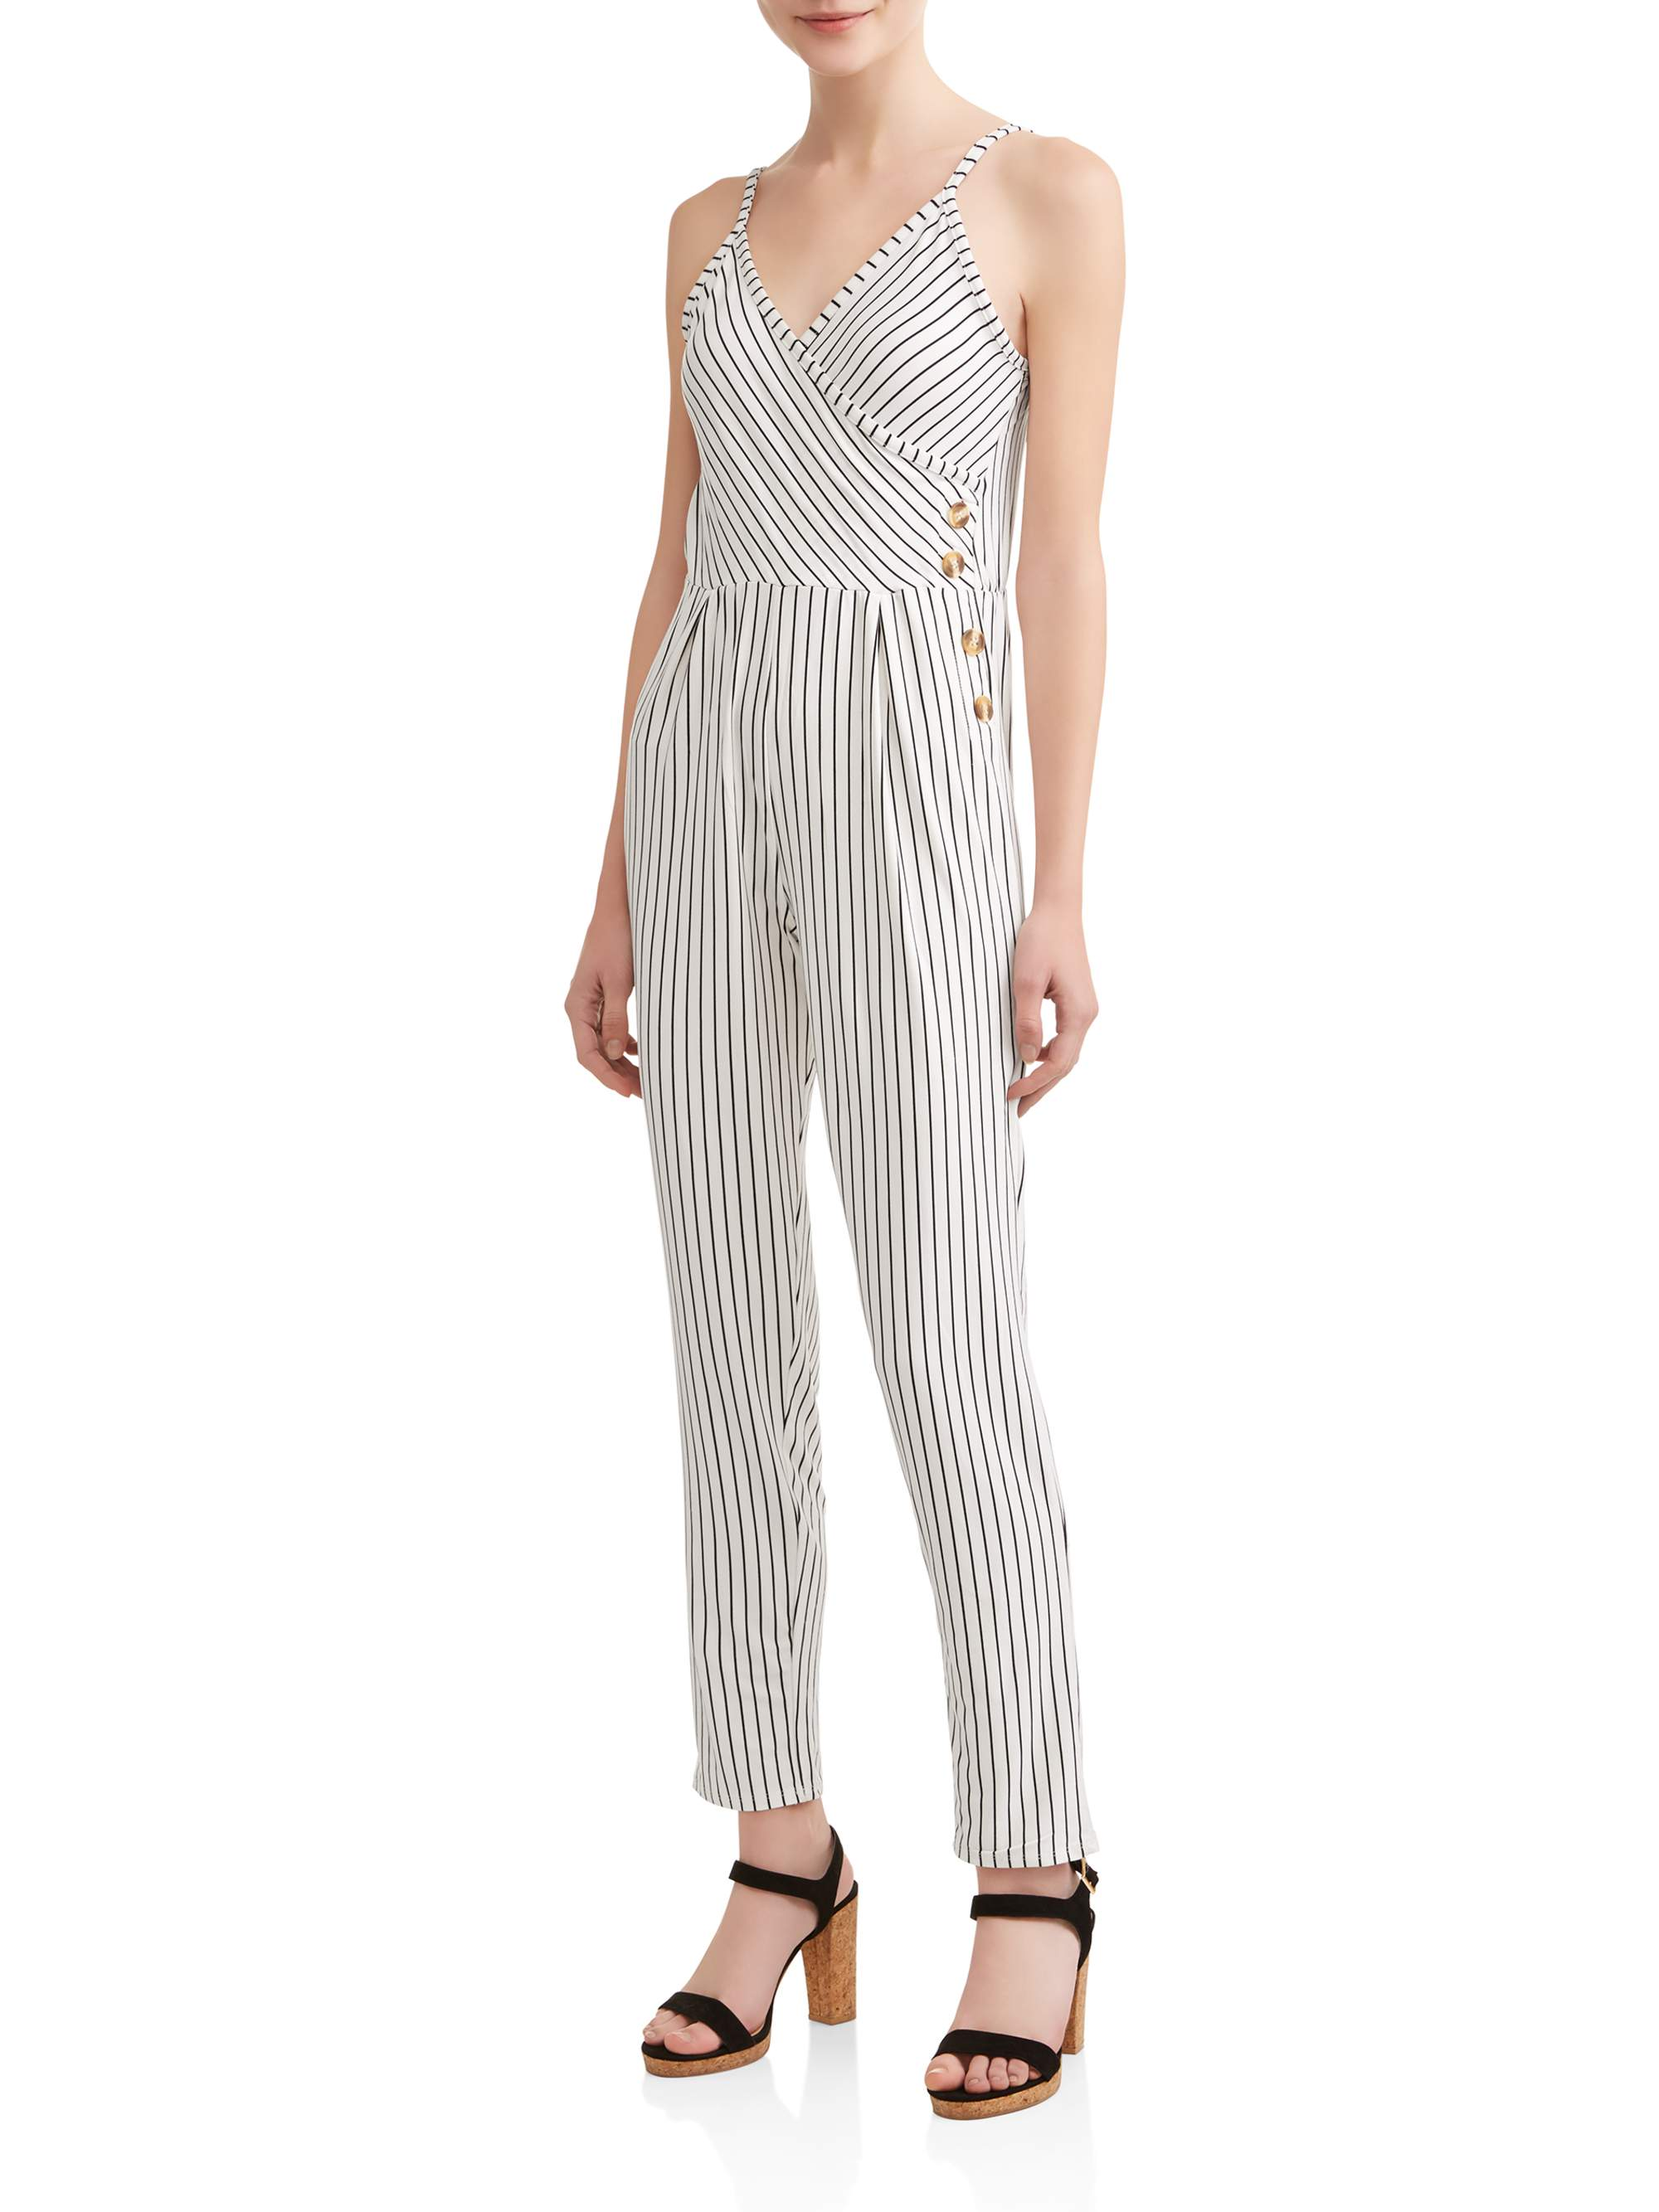 Juniors Rompers Jumpsuits Walmartcom